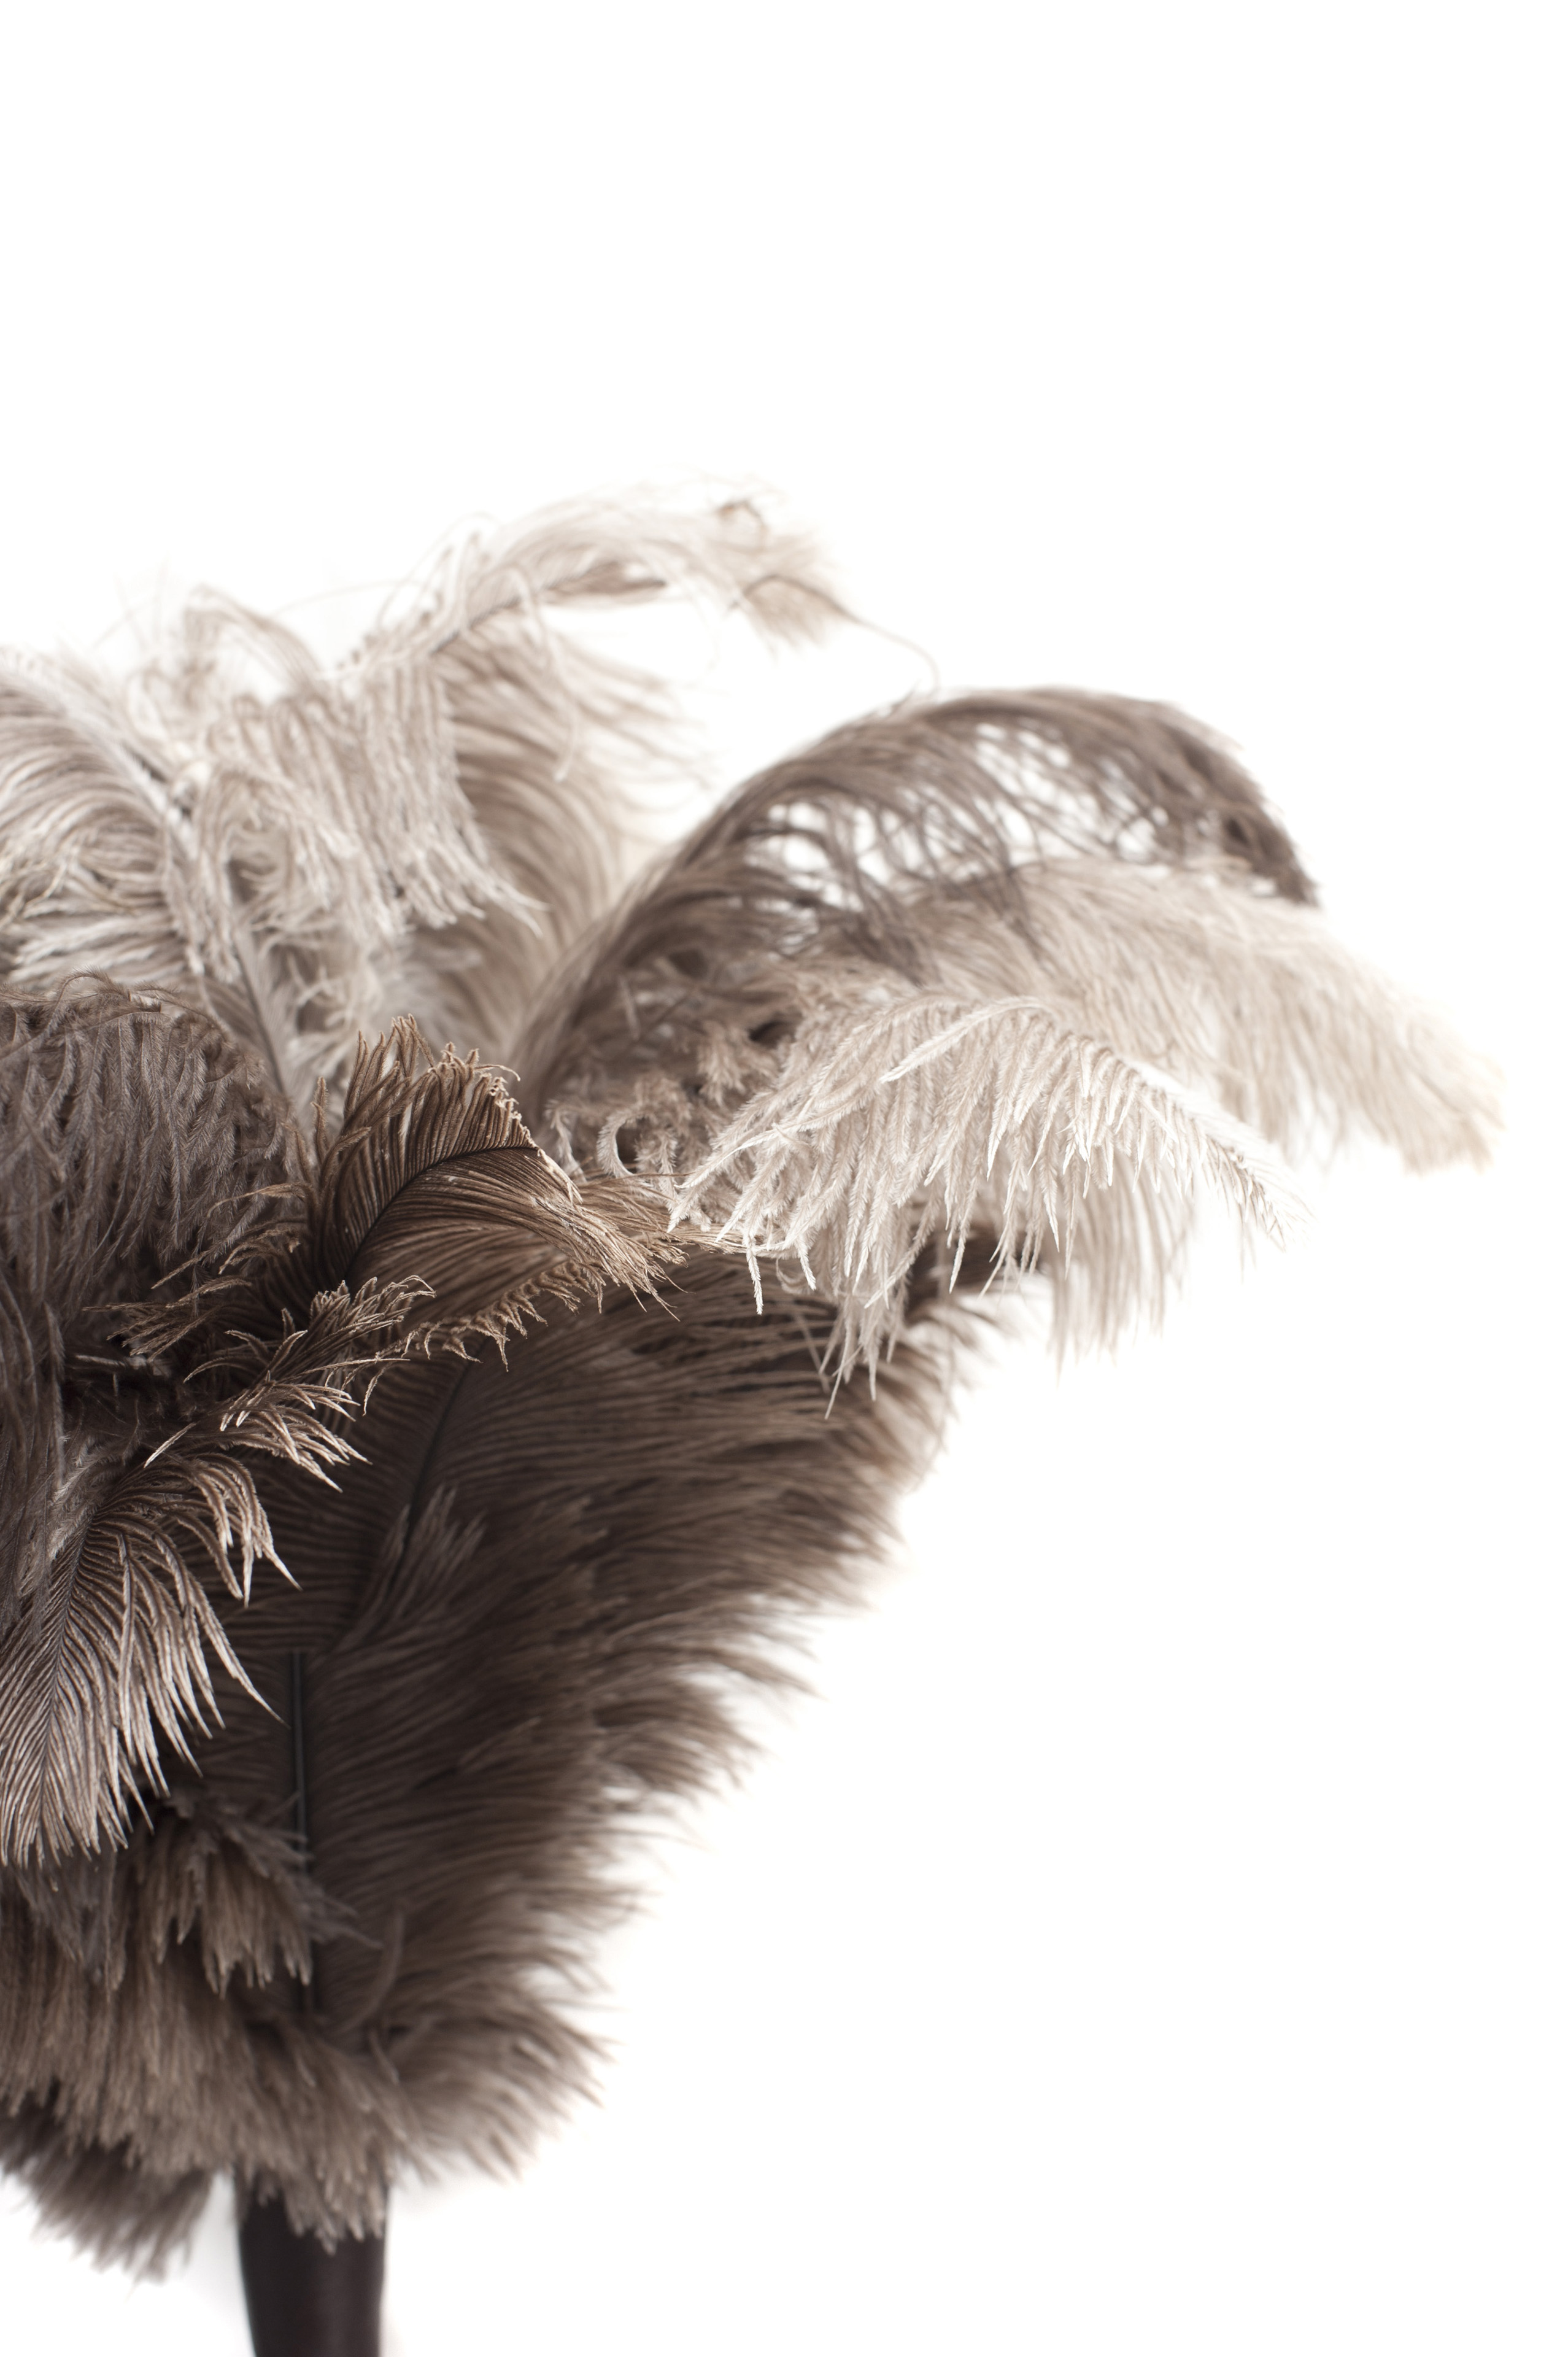 Close up Brown Gray Feather Duster on White Background, Emphasizing Copy Space for Texts.